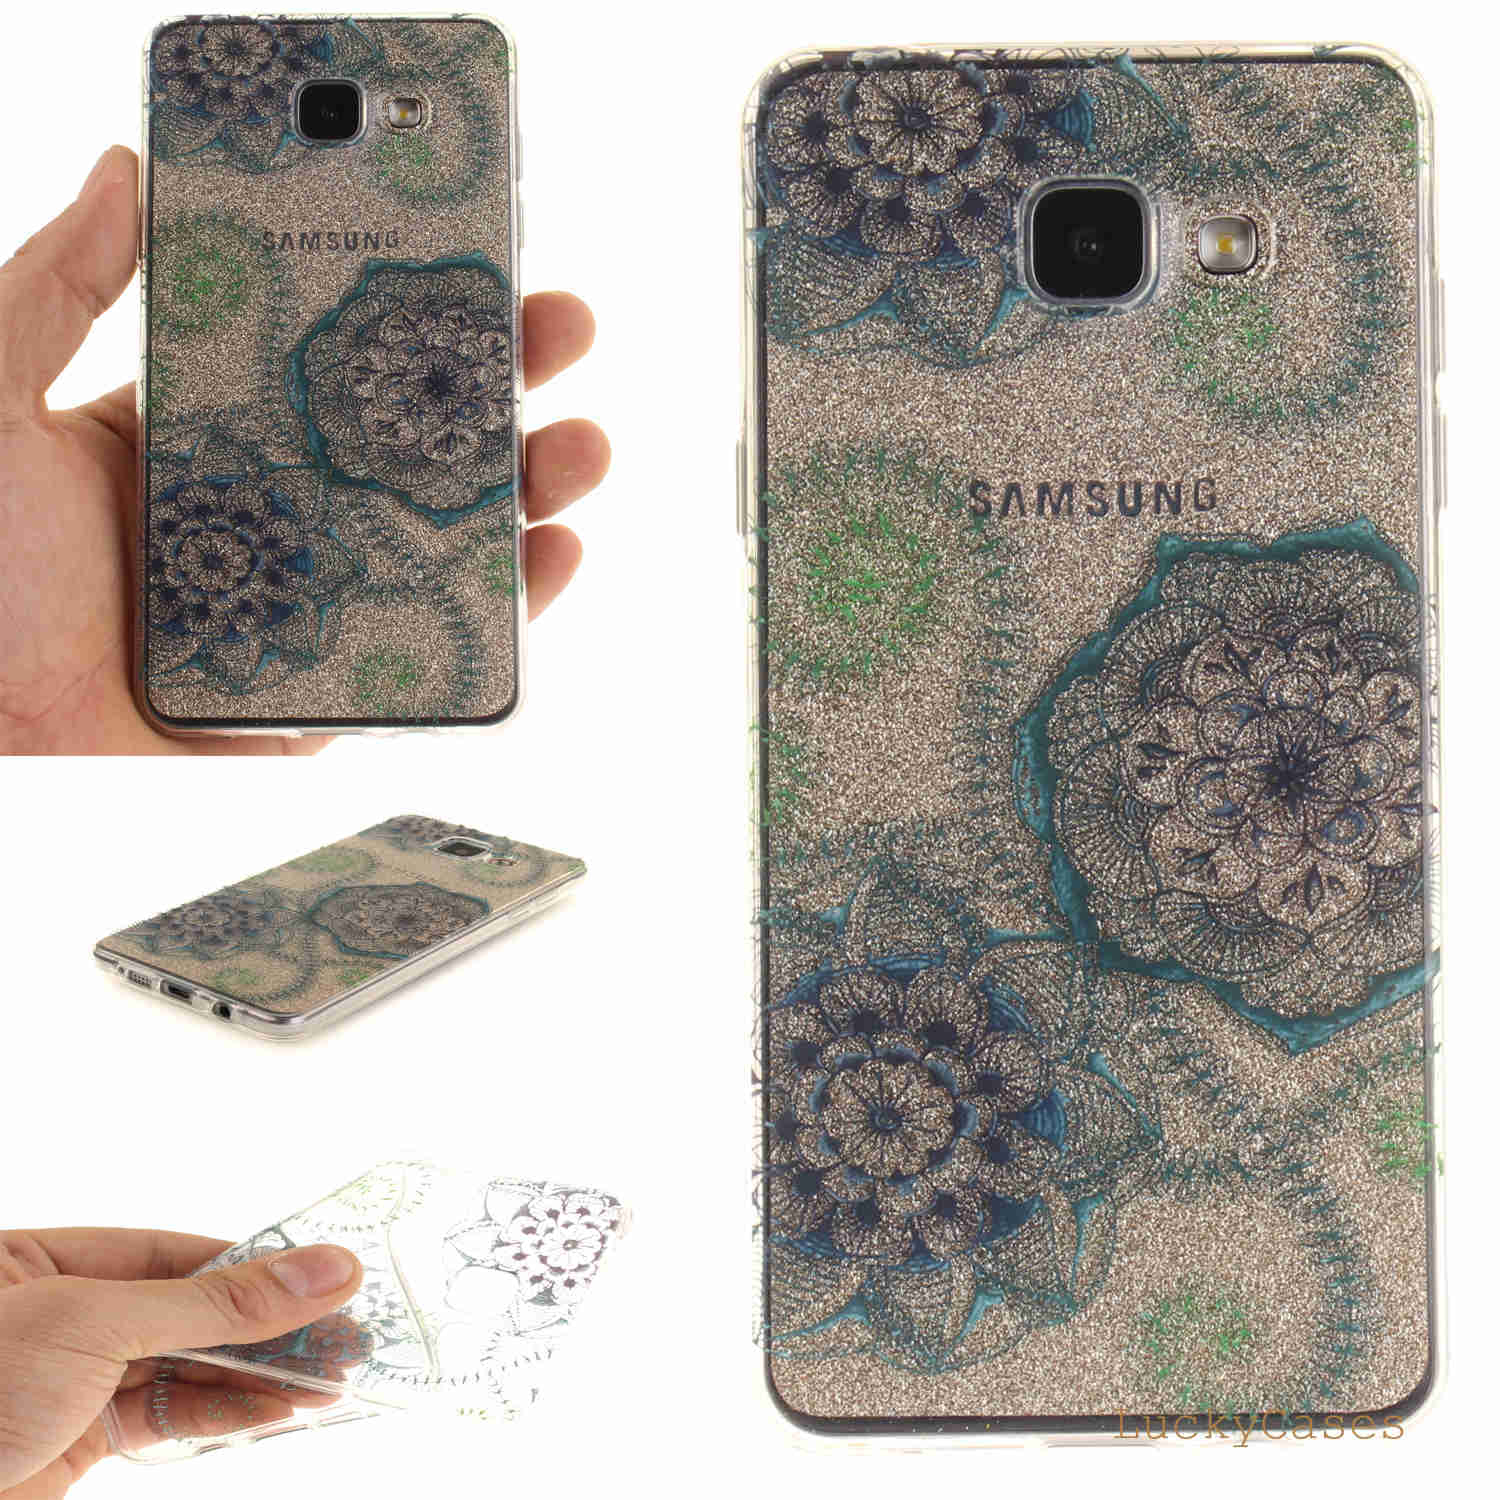 Faithful Accessories Phone Cases Covers For Samsung Galaxy A3 A5 A7 J1 J2 J3 J5 J7 2015 2016 2017 Shape Puzzle Piece Pattern Pure White And Translucent Phone Bags & Cases Cellphones & Telecommunications